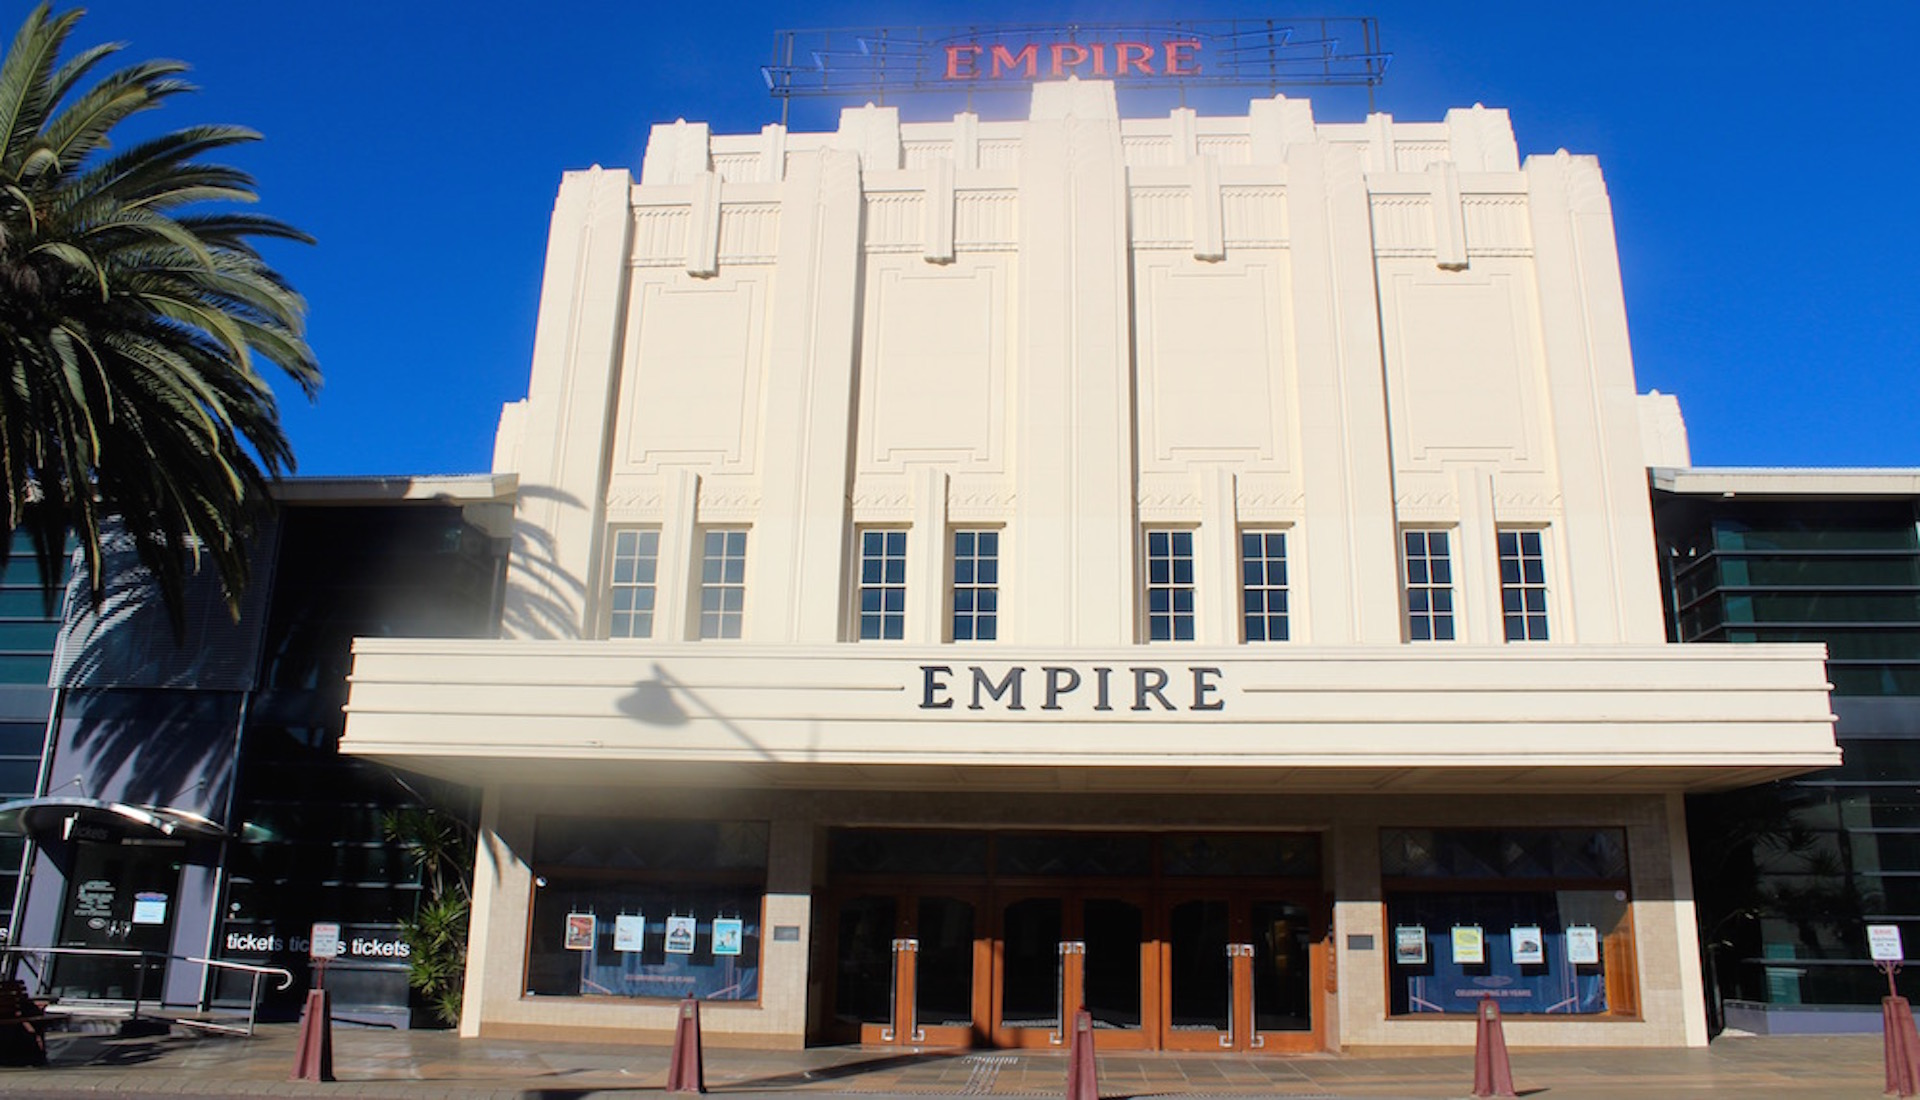 Toowoomba Empire Theatre